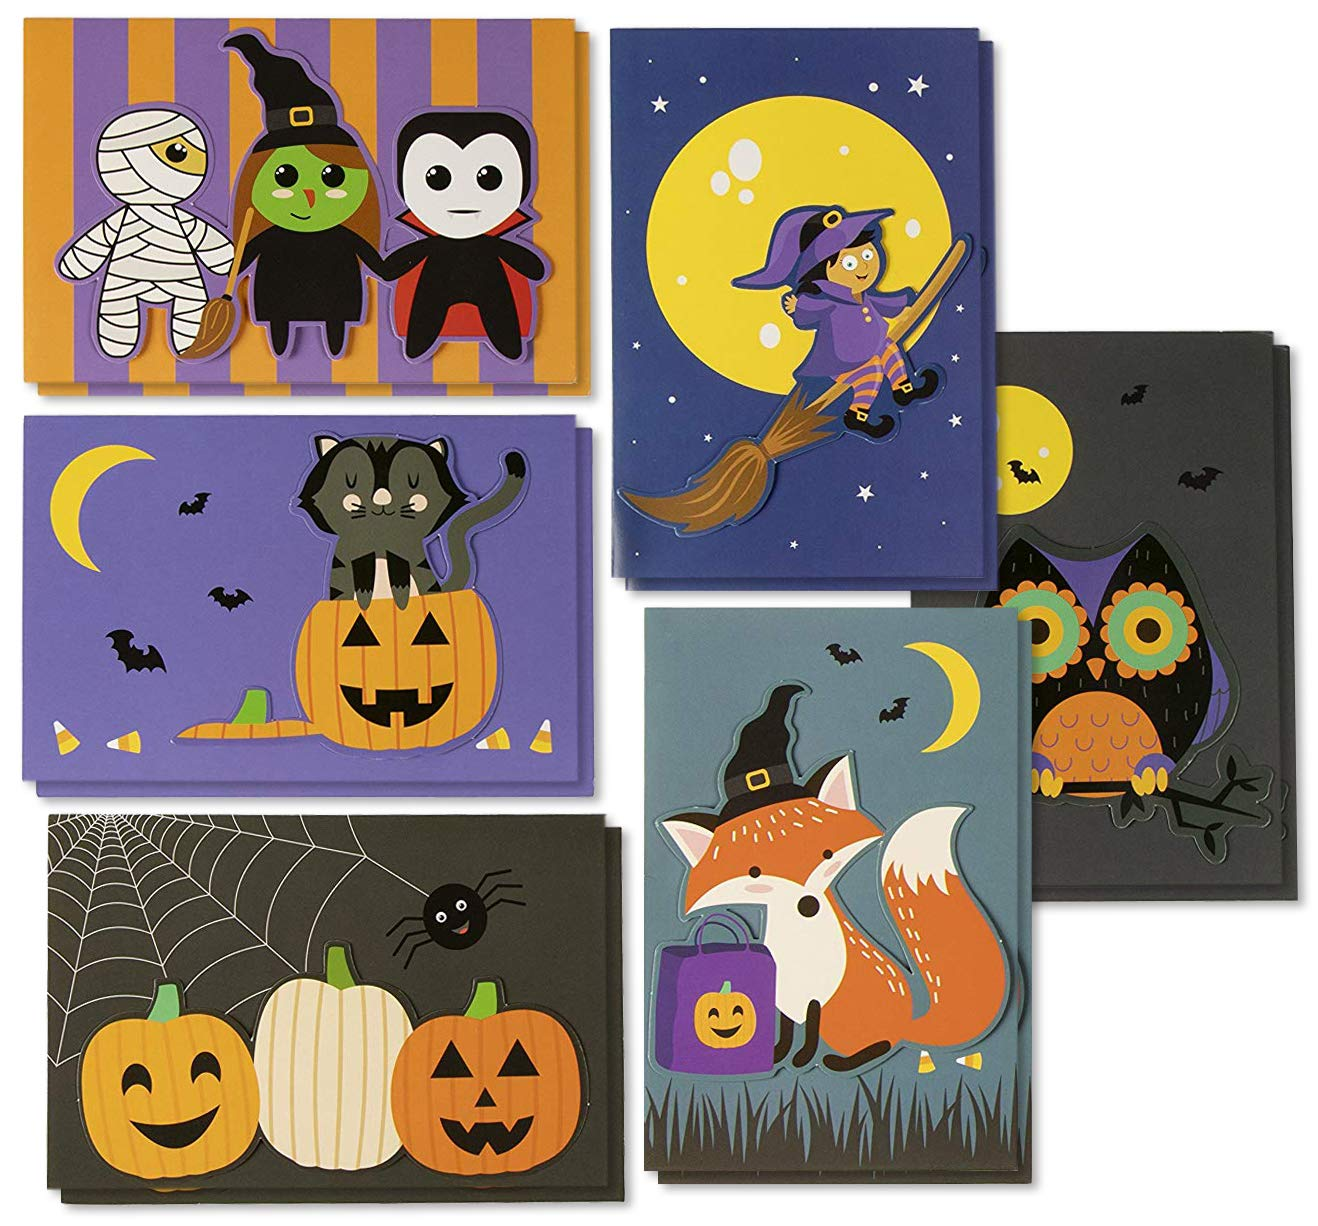 Halloween Greeting Cards - 24-Pack Halloween Cards with 6 Designs for Trick-or-Treating, Party Favors, Includes Inside Greeting Messages and Orange Envelopes, 4 x 6 Inches